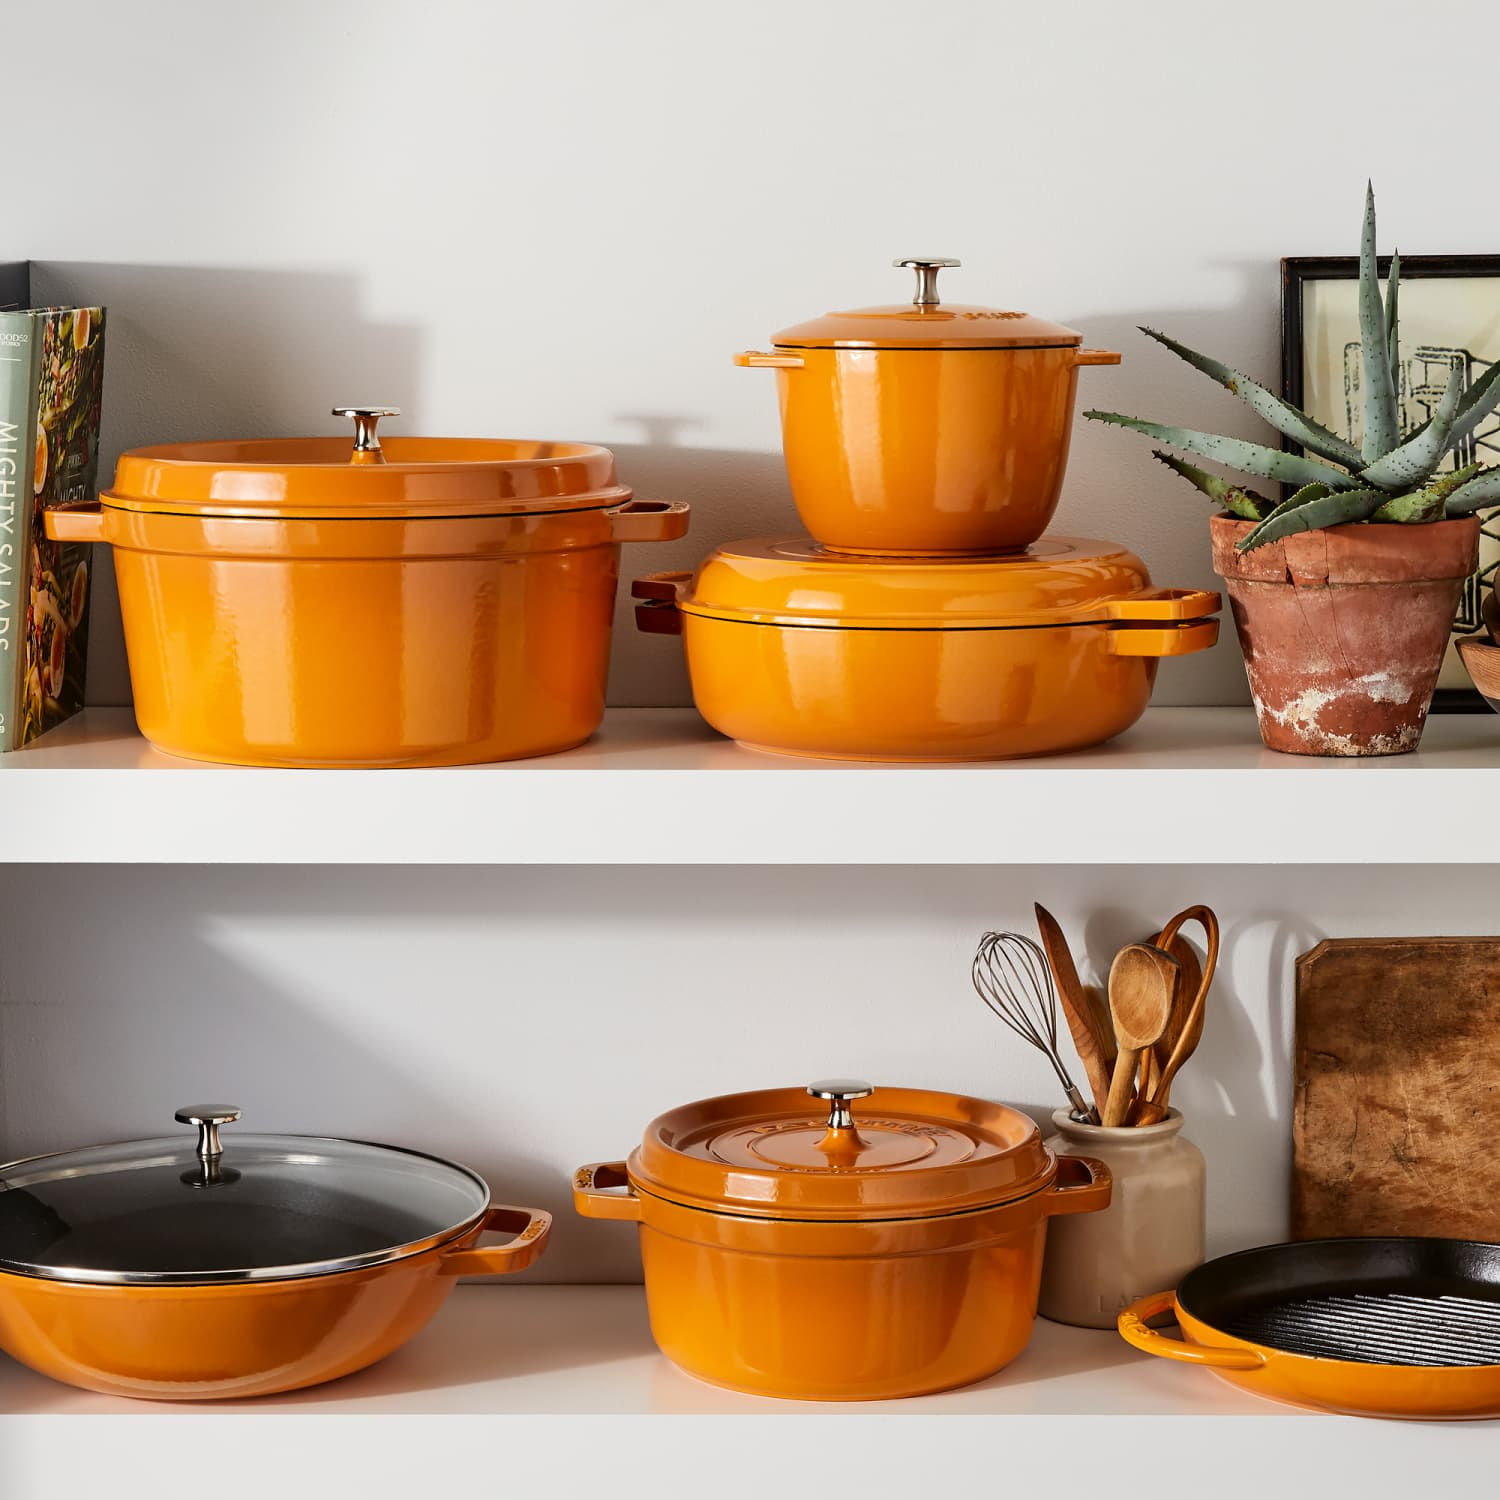 Staub Just Launched Cookware in Turmeric